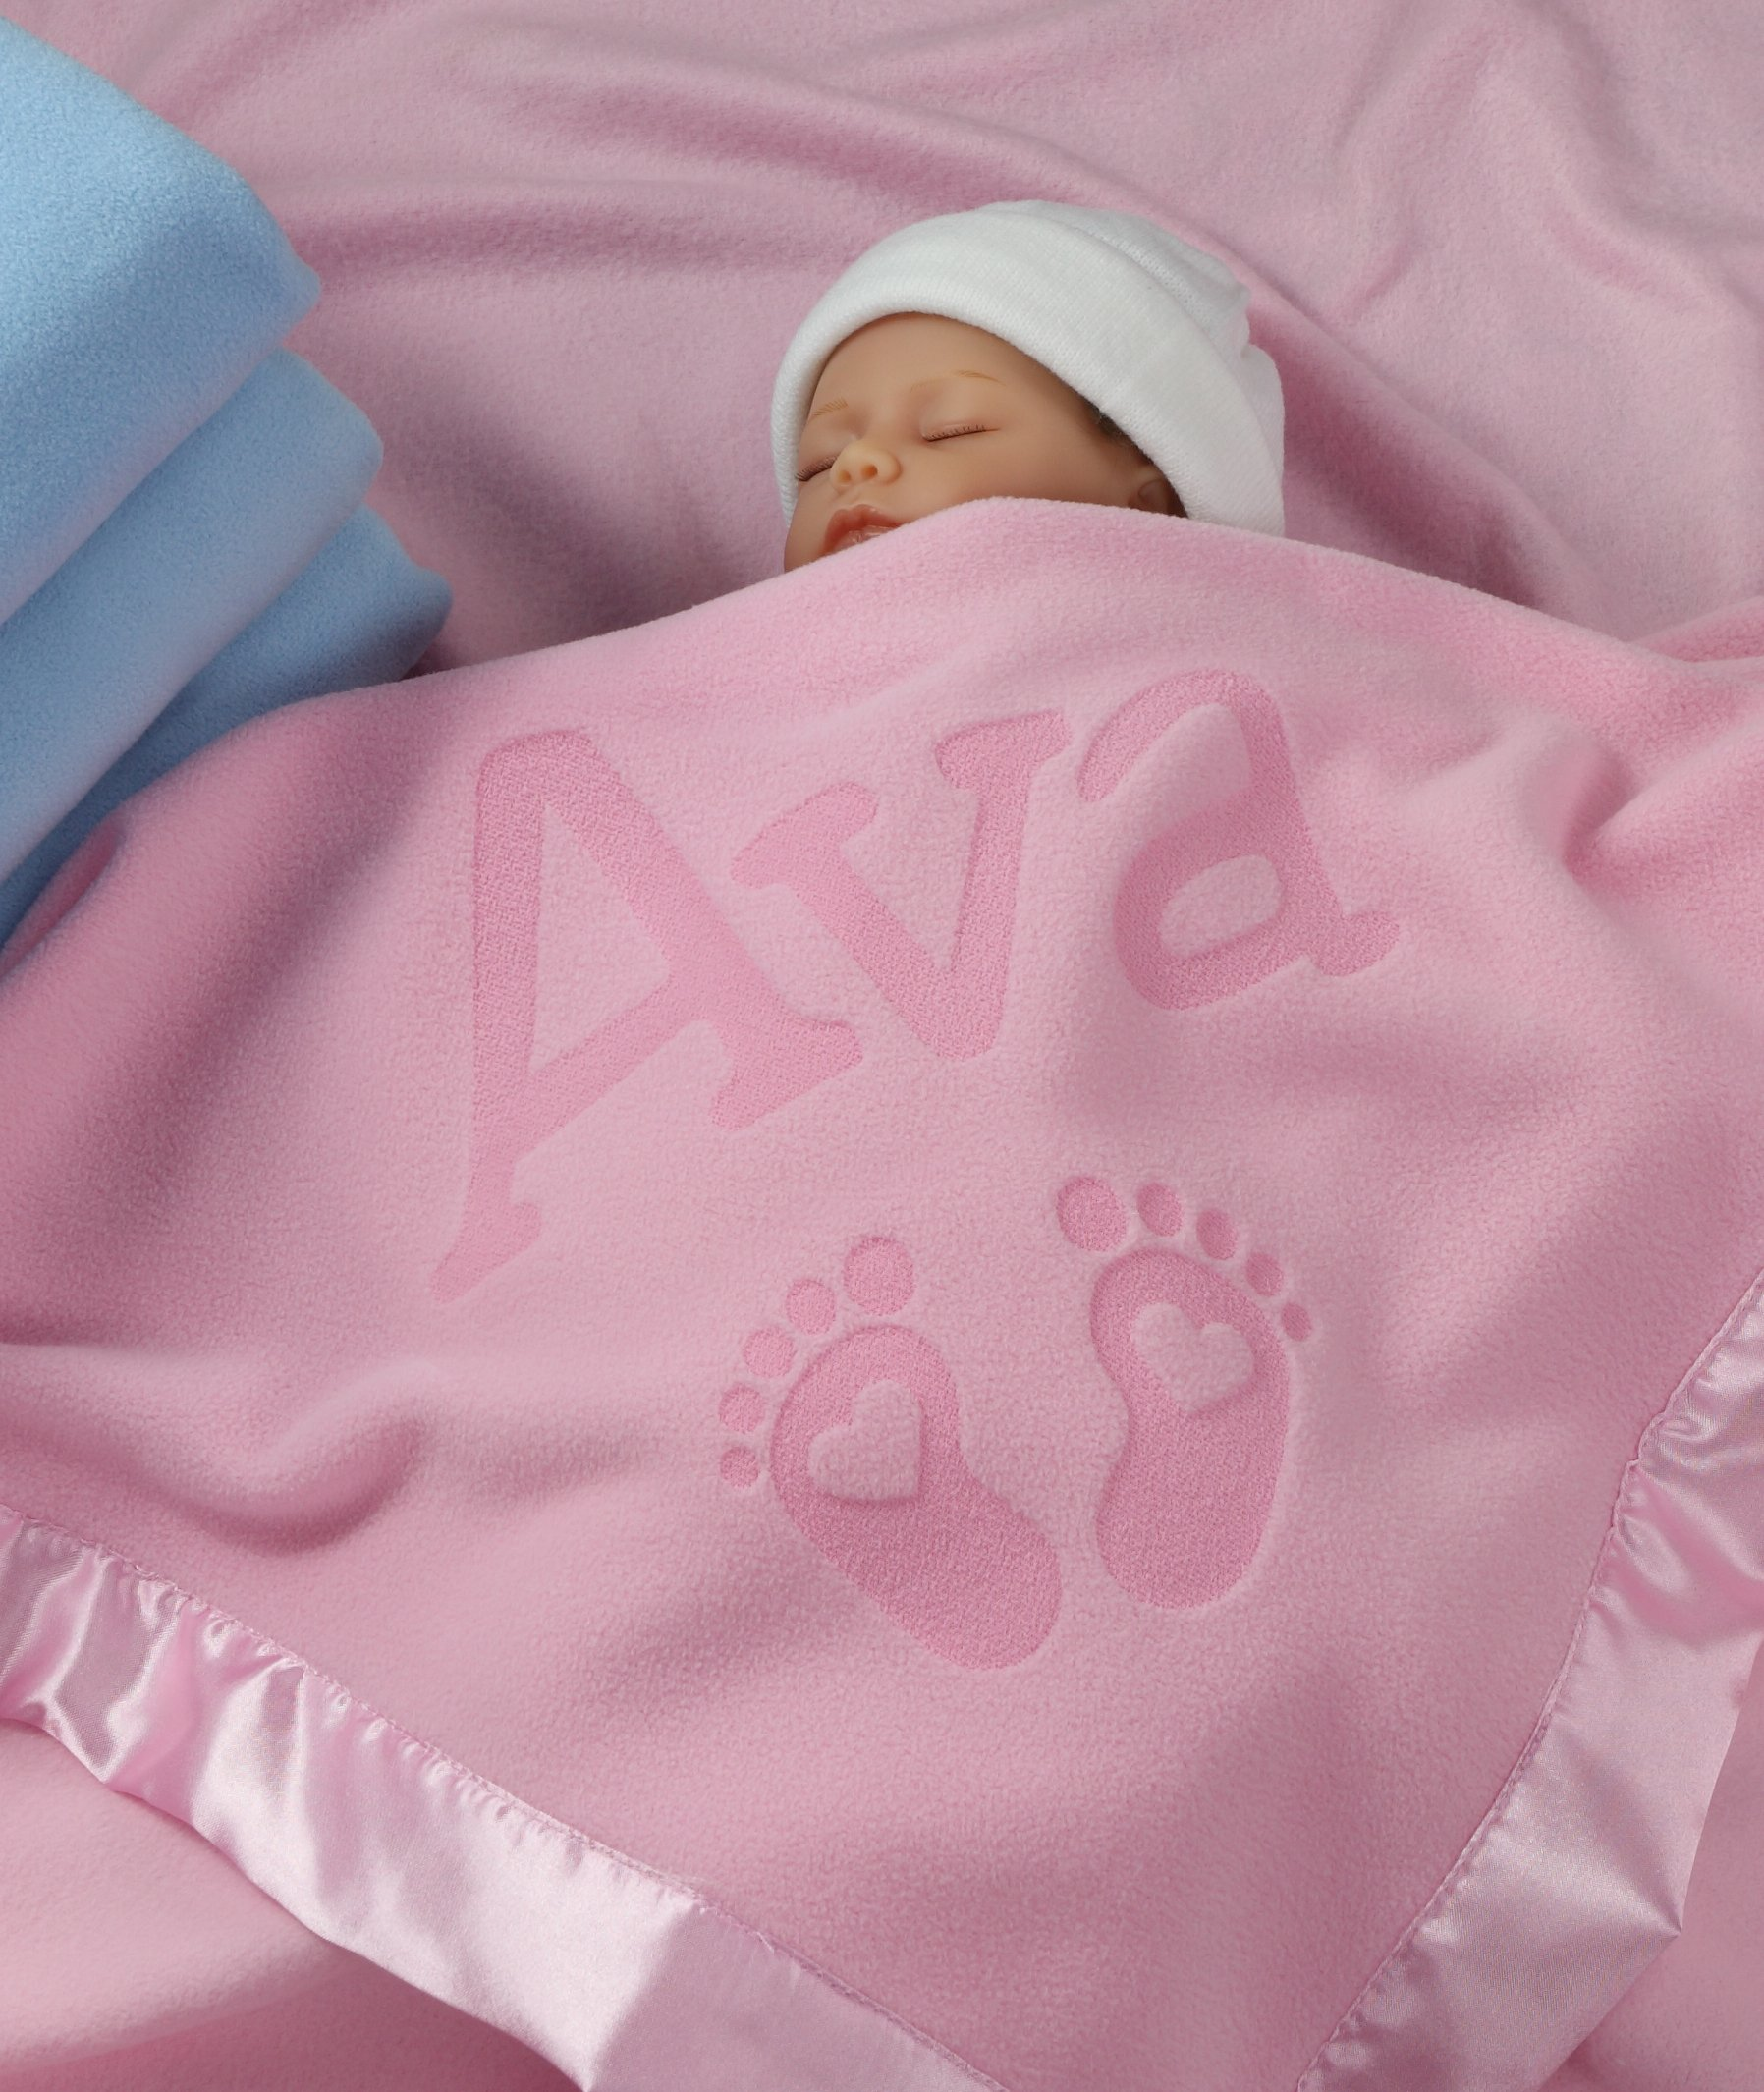 Custom Catch Personalized Newborn Gift Baby Blanket for Girl - Name with Infant Heart Feet Design - Pink or Blue (1 Line Text)